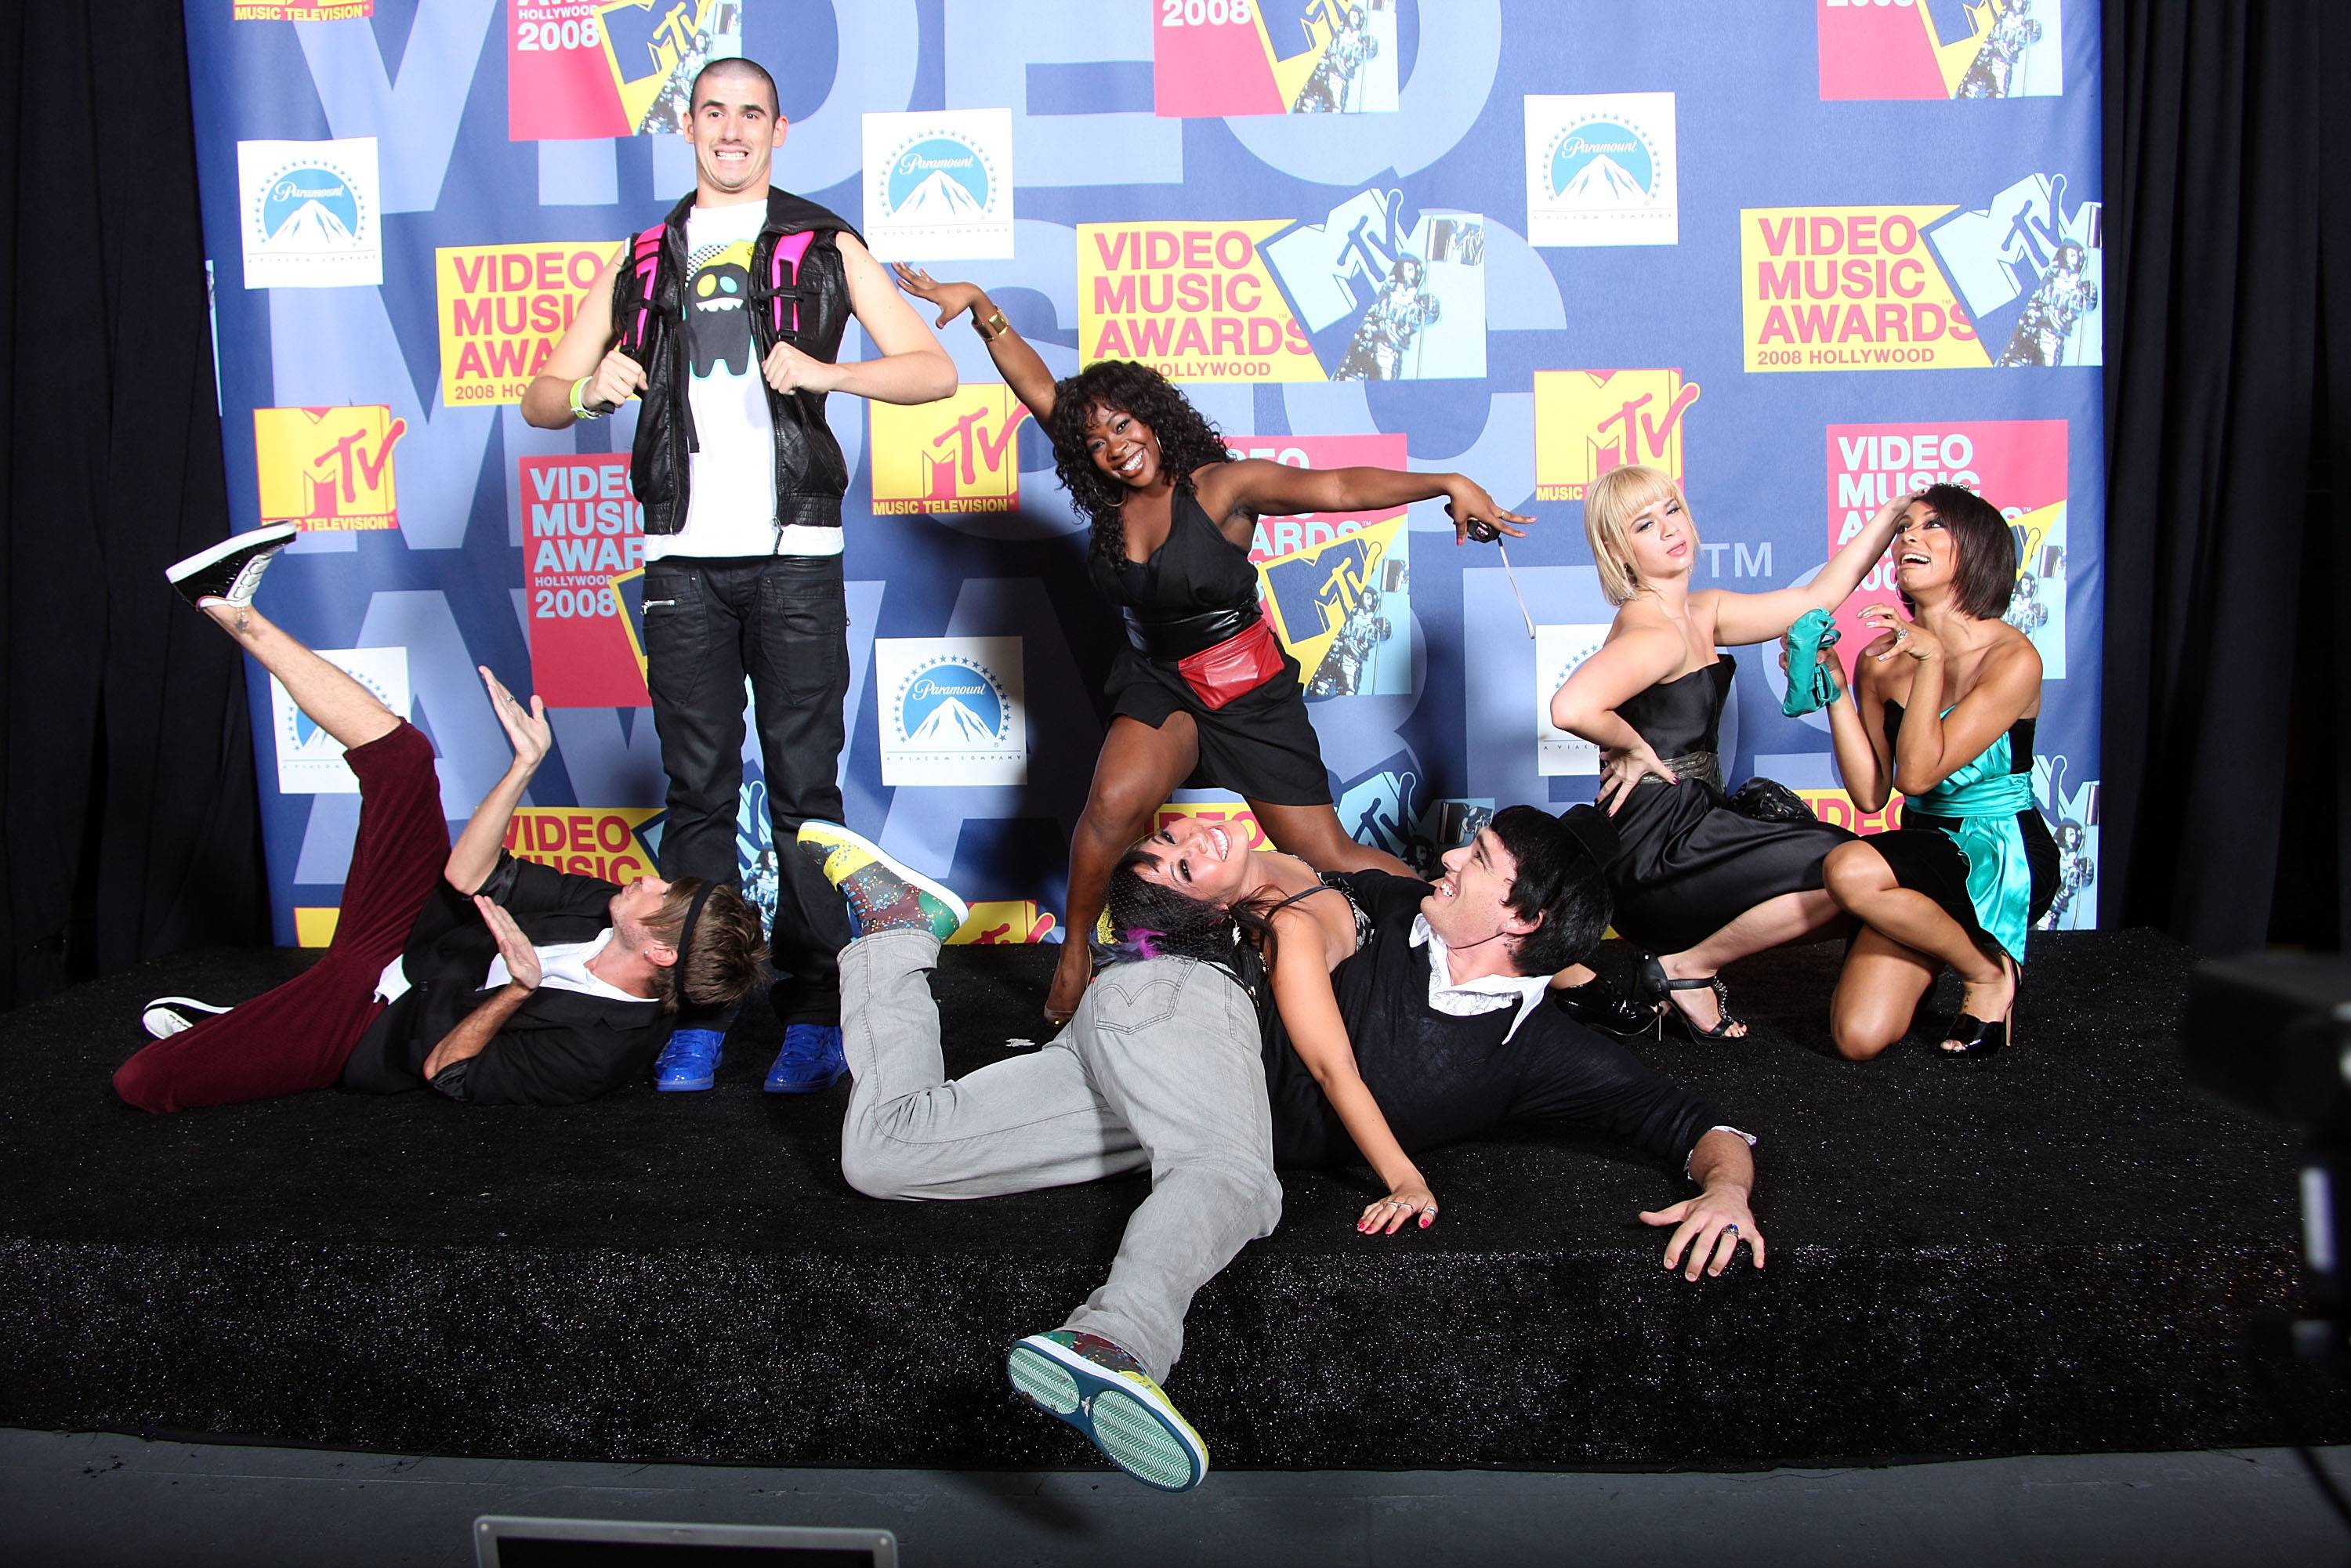 'Dance Crew' Fanny Pak strikes a pose at the 2008 MTV Video Music Awards in Hollywood.